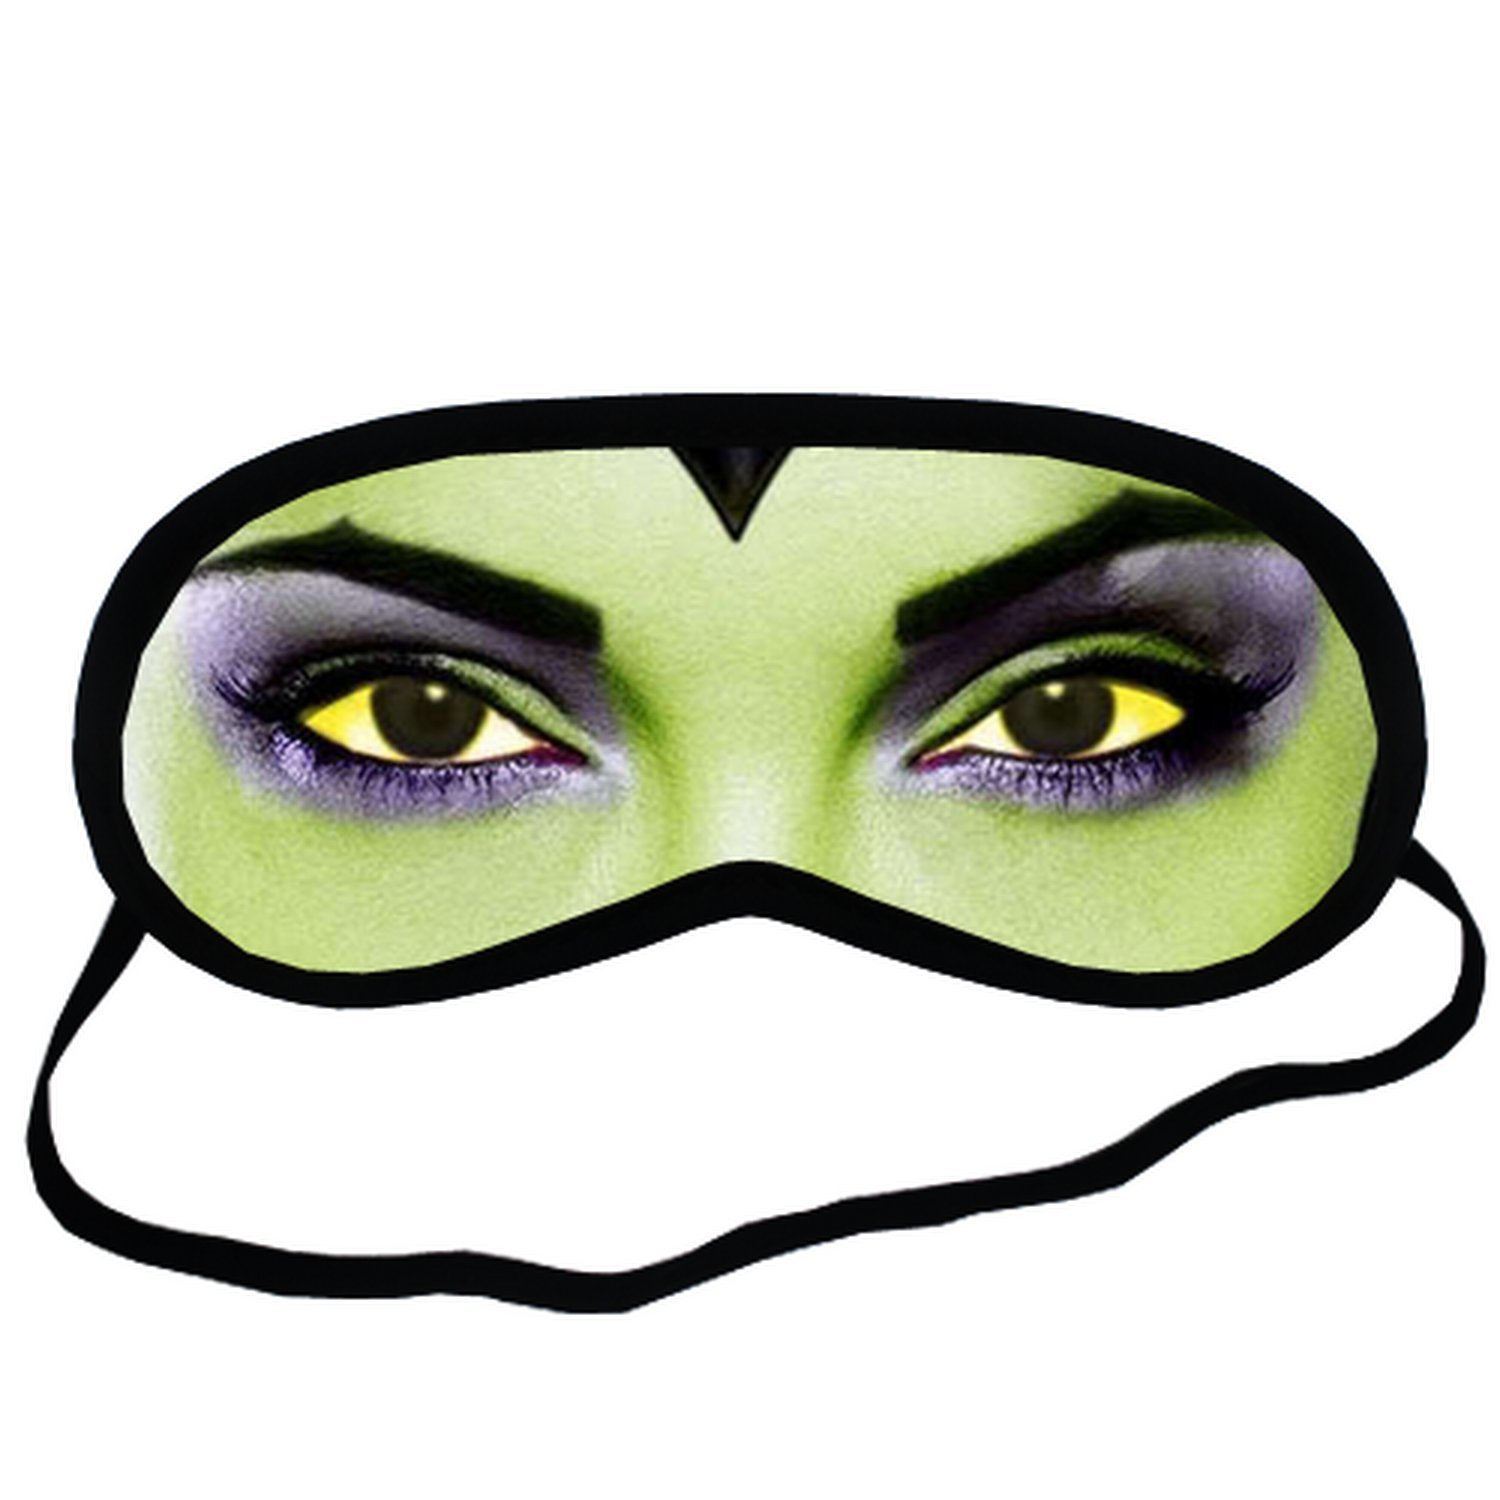 Maleficent EYM670 Eye Printed Travel Eye Mask Sleeping by Eye Mask Sleeping